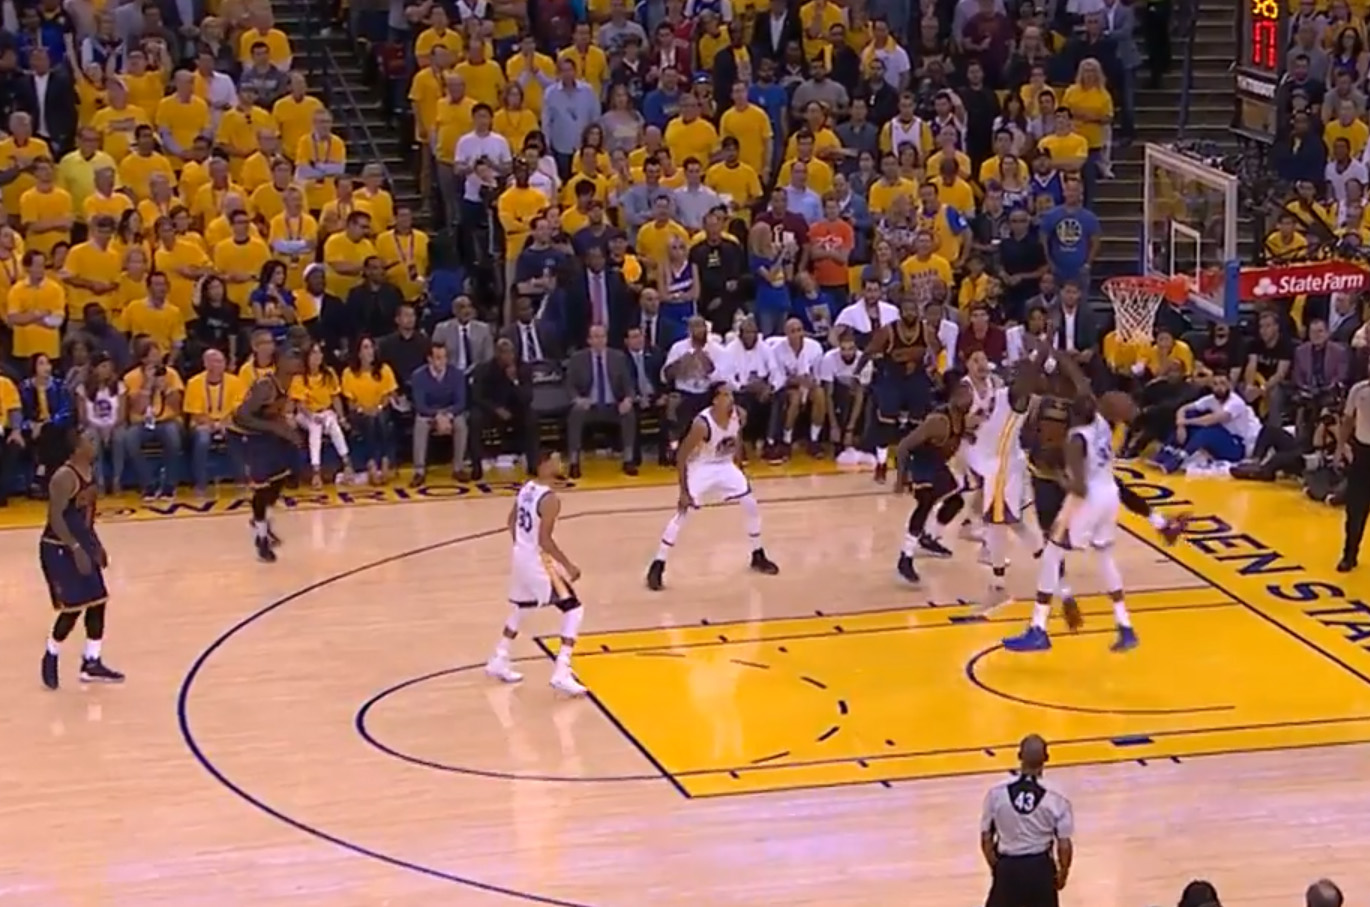 James Resulting Decision A Bailout Pass To Kyrie Irving In The Left Corner Was Easily Intercepted By Klay Thompson Who Immediately Pushed Ball And